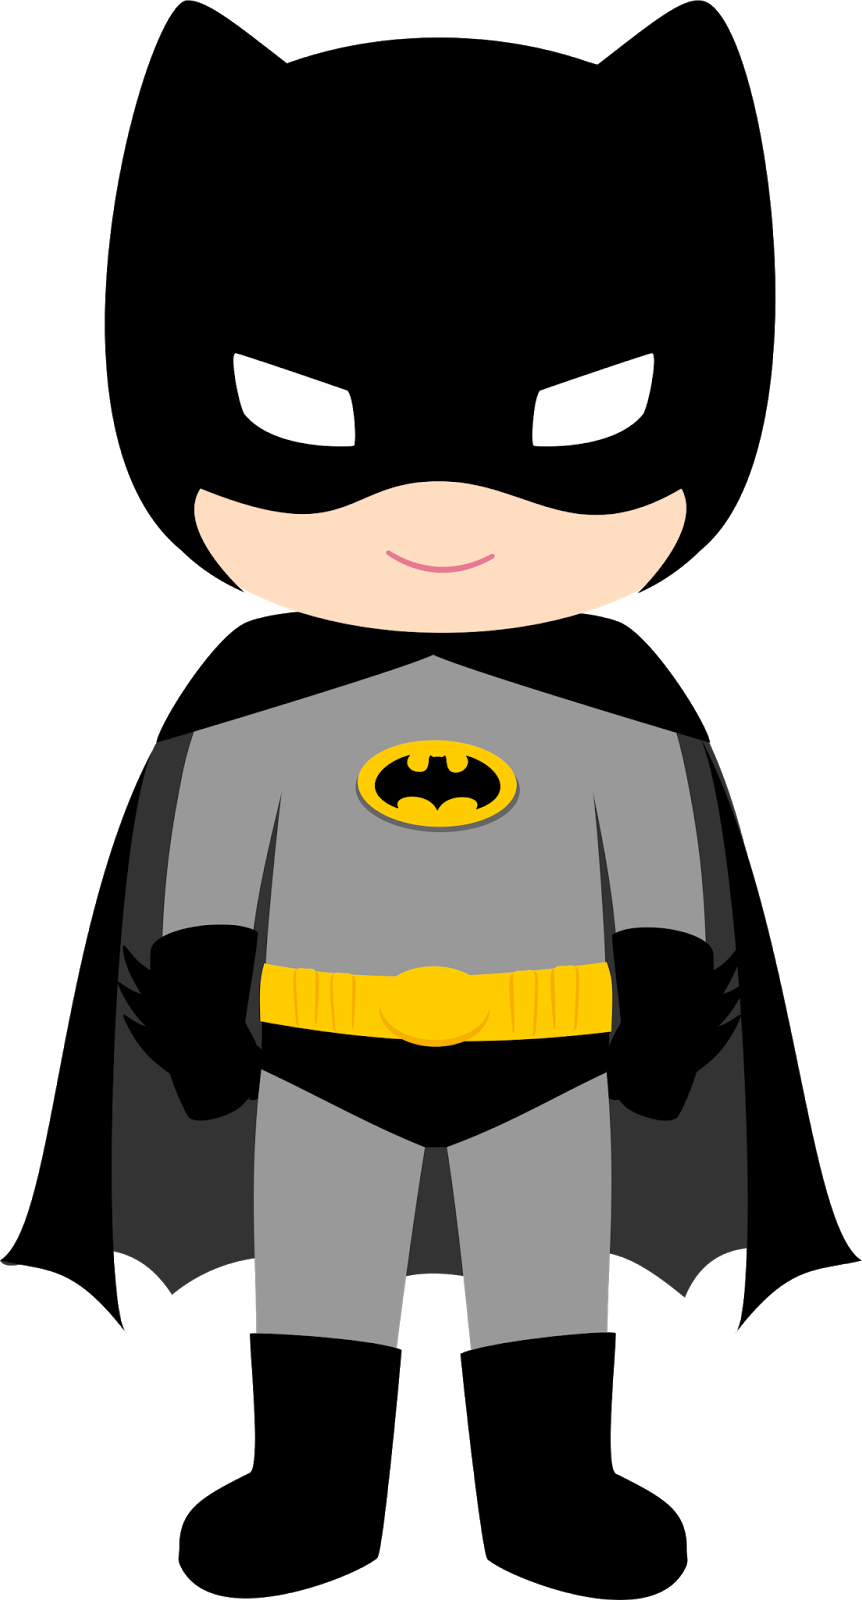 Star wars batman clipart transparent library Characters of Batman Kids Version Clip Art. - Oh My Fiesta! for Geeks transparent library